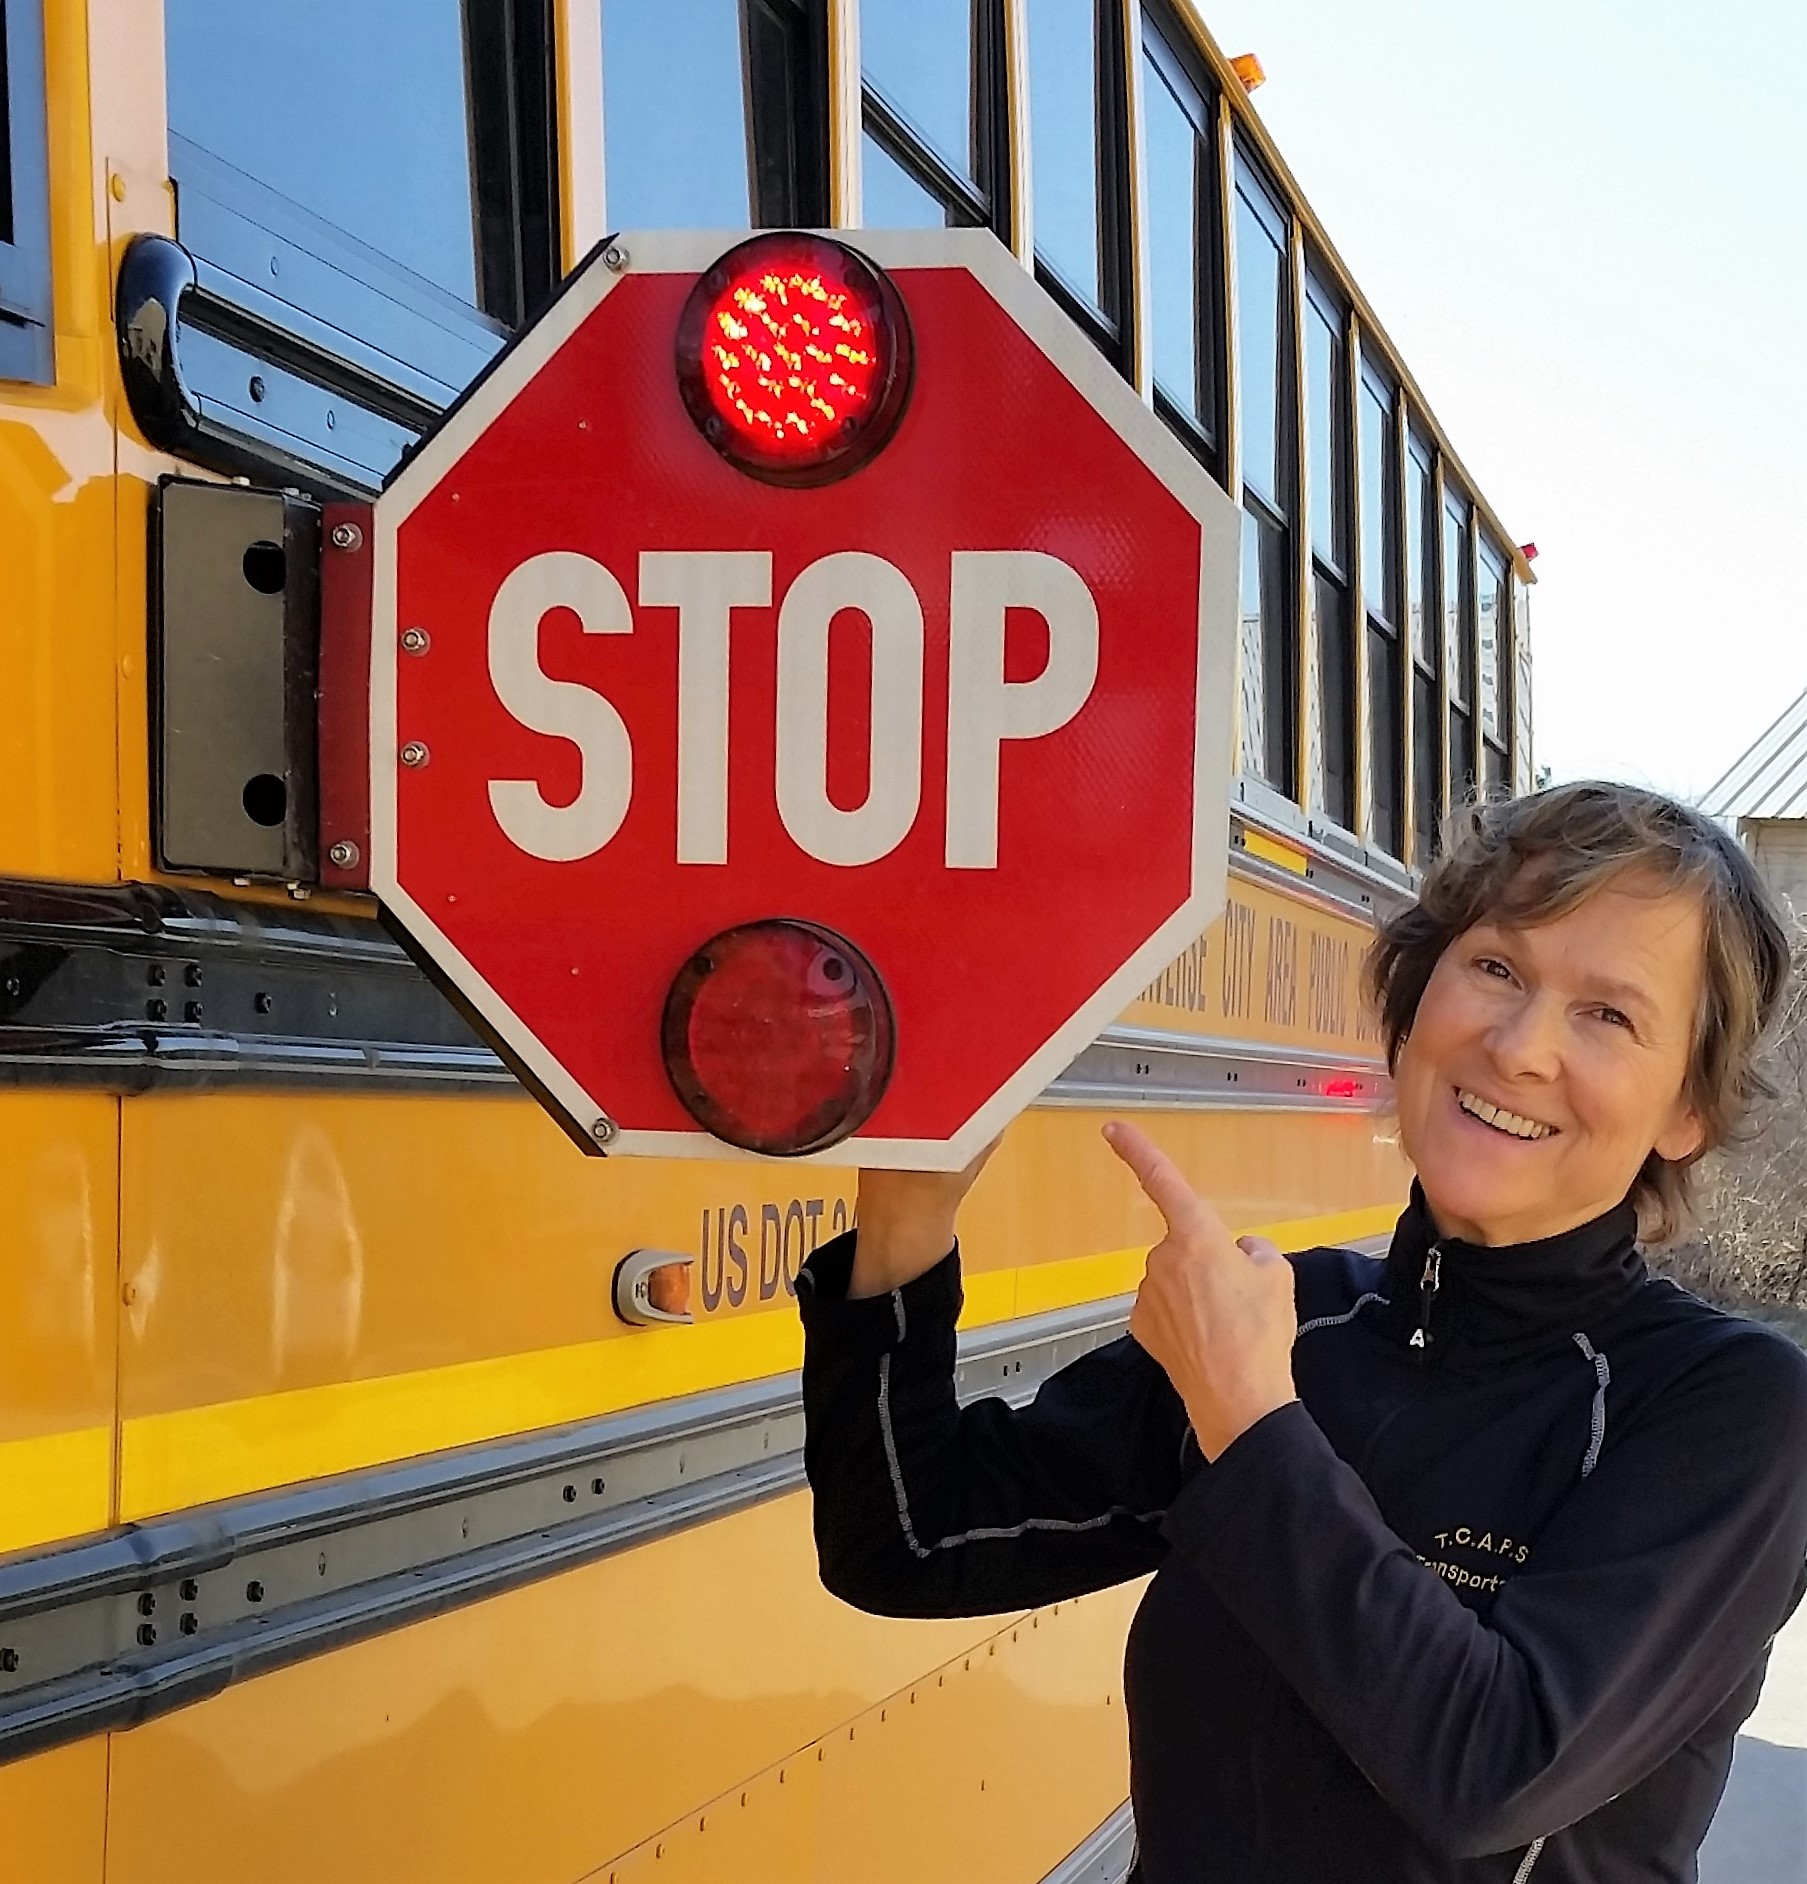 Bus Driver has 'Higher Purpose'